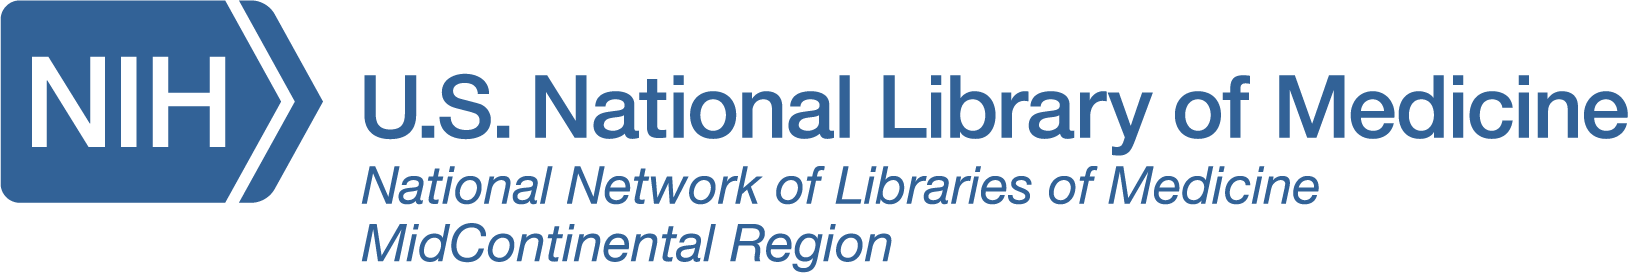 National Network of Libraries of Medicine MidContinental Region logo